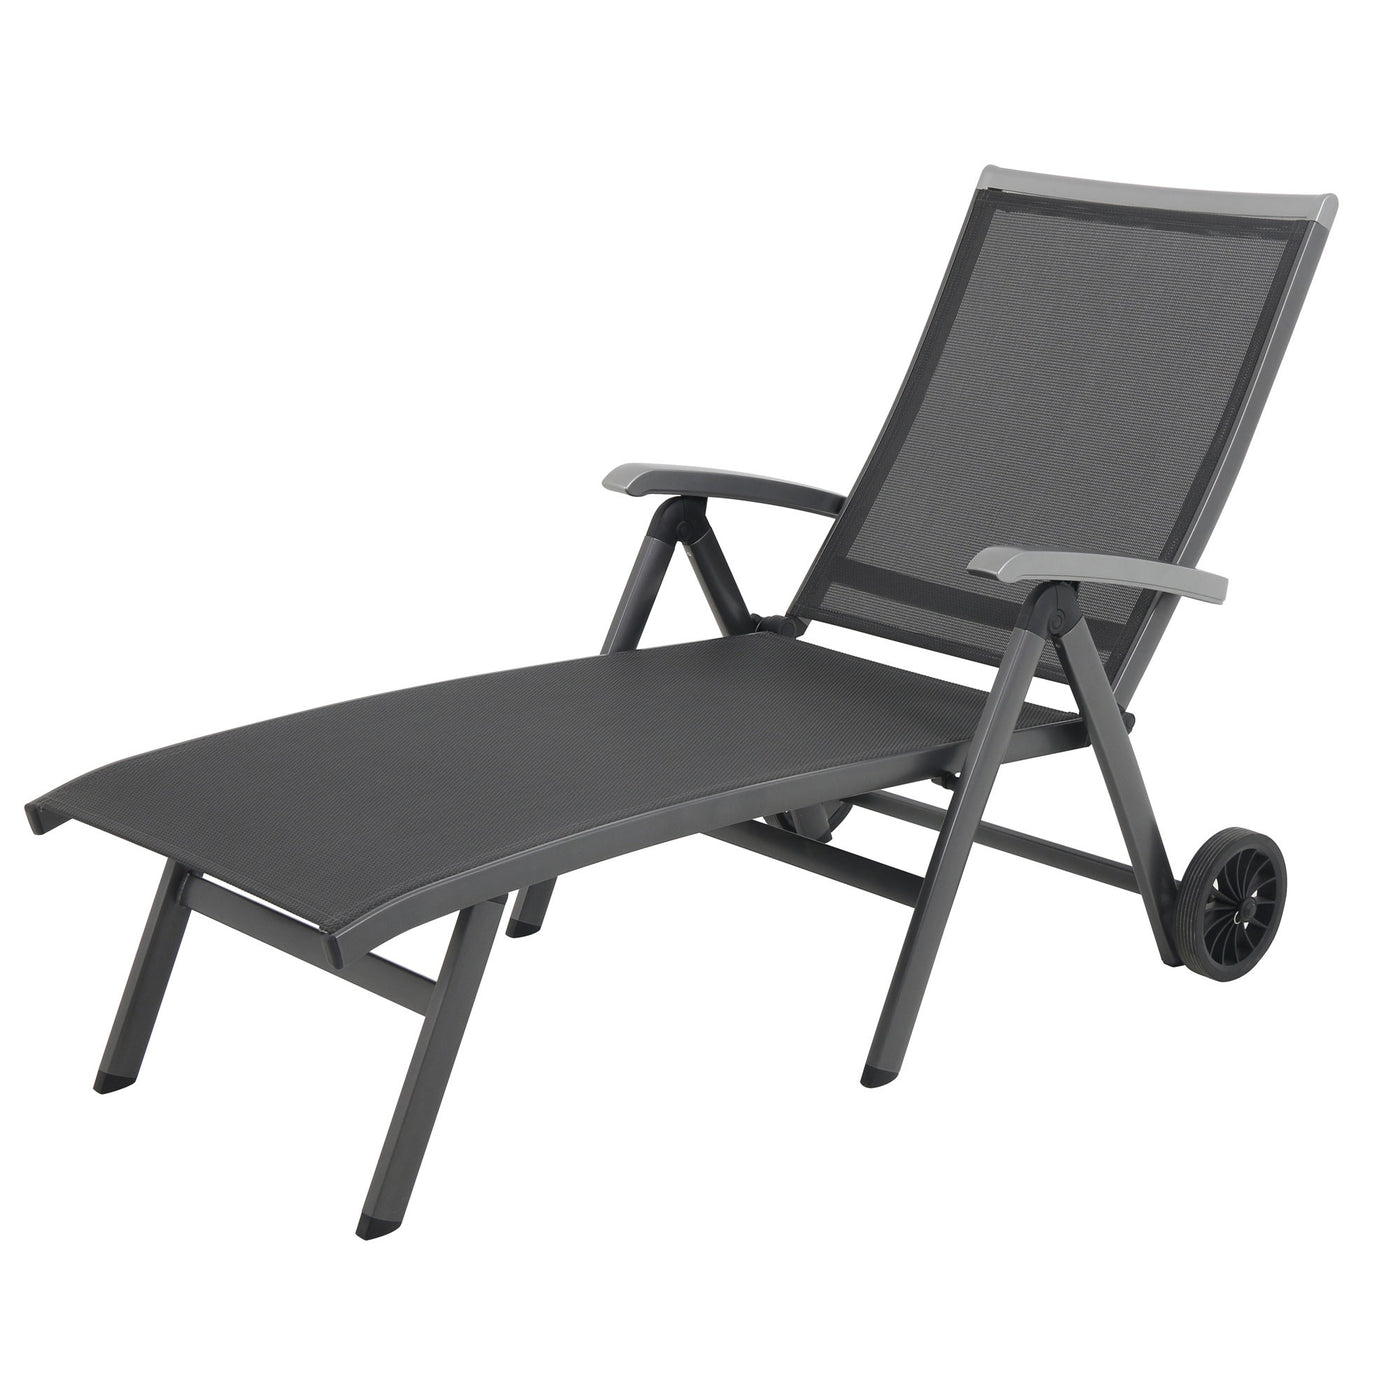 Ludwig Aluminum Sling Folding Patio Chaise Lounge With Wheels